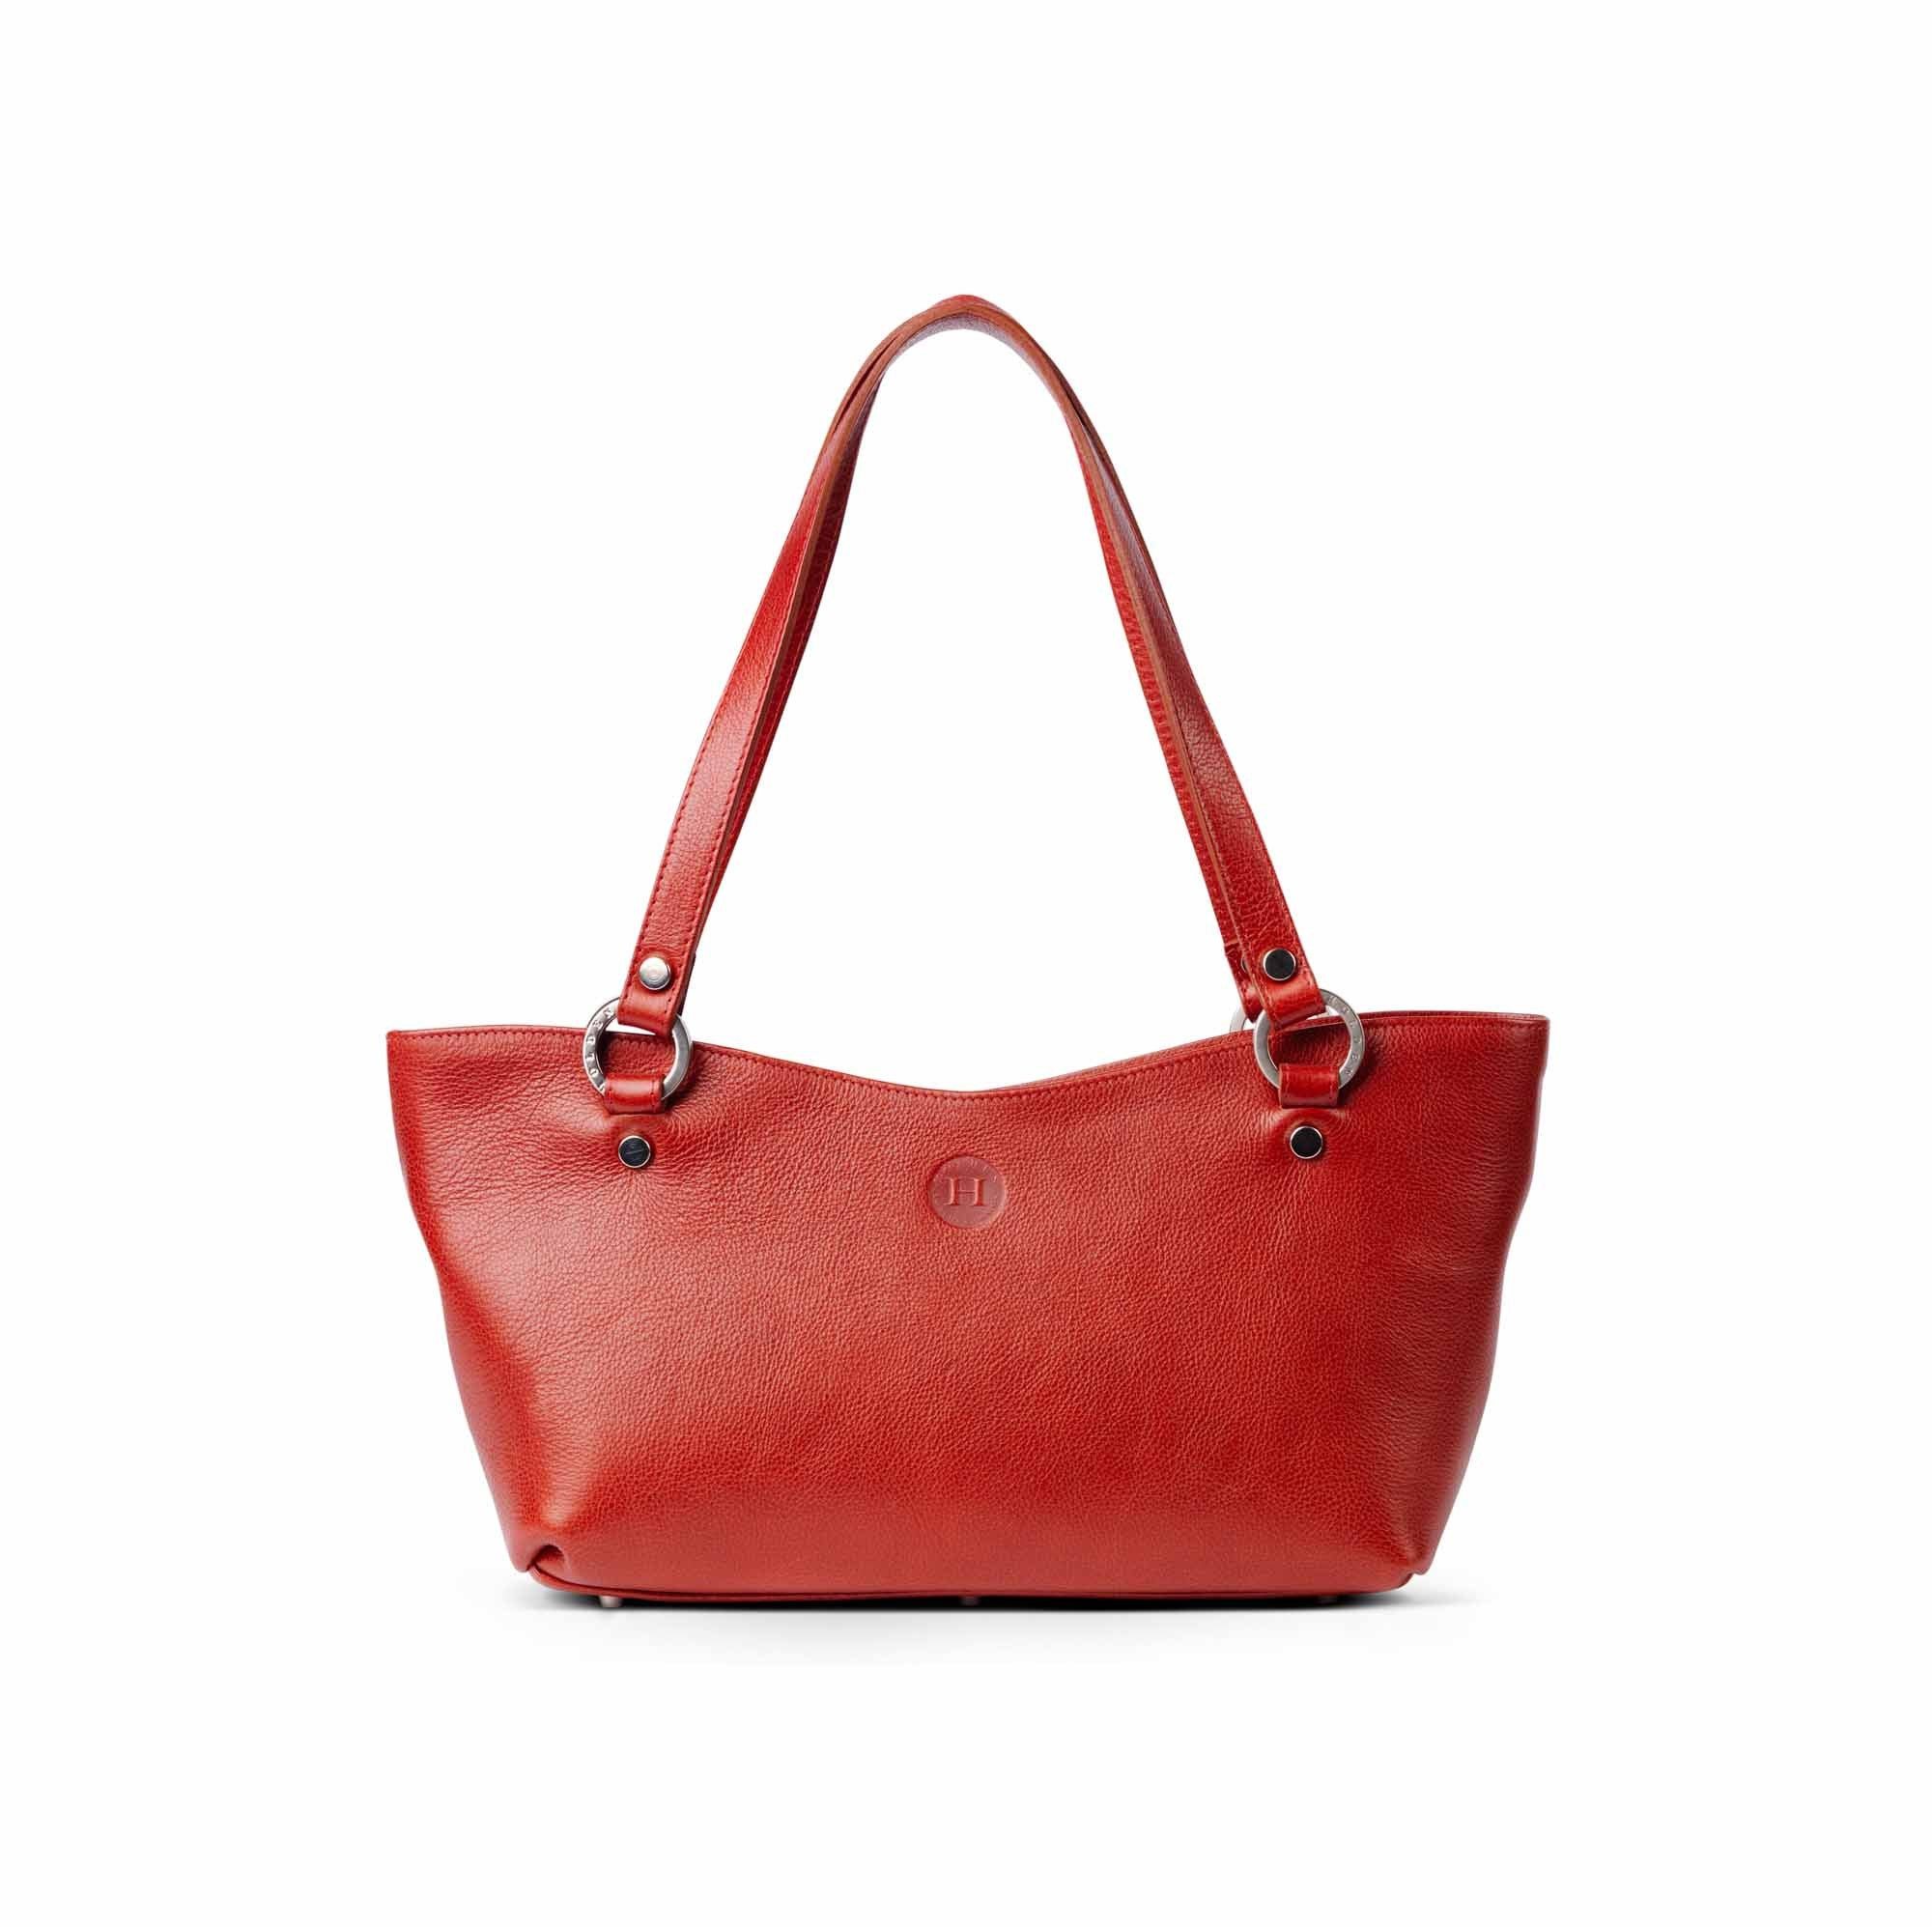 Caitlin Medium Leather Tote Red - Holden Leathergoods, leather bags handmade in Ireland